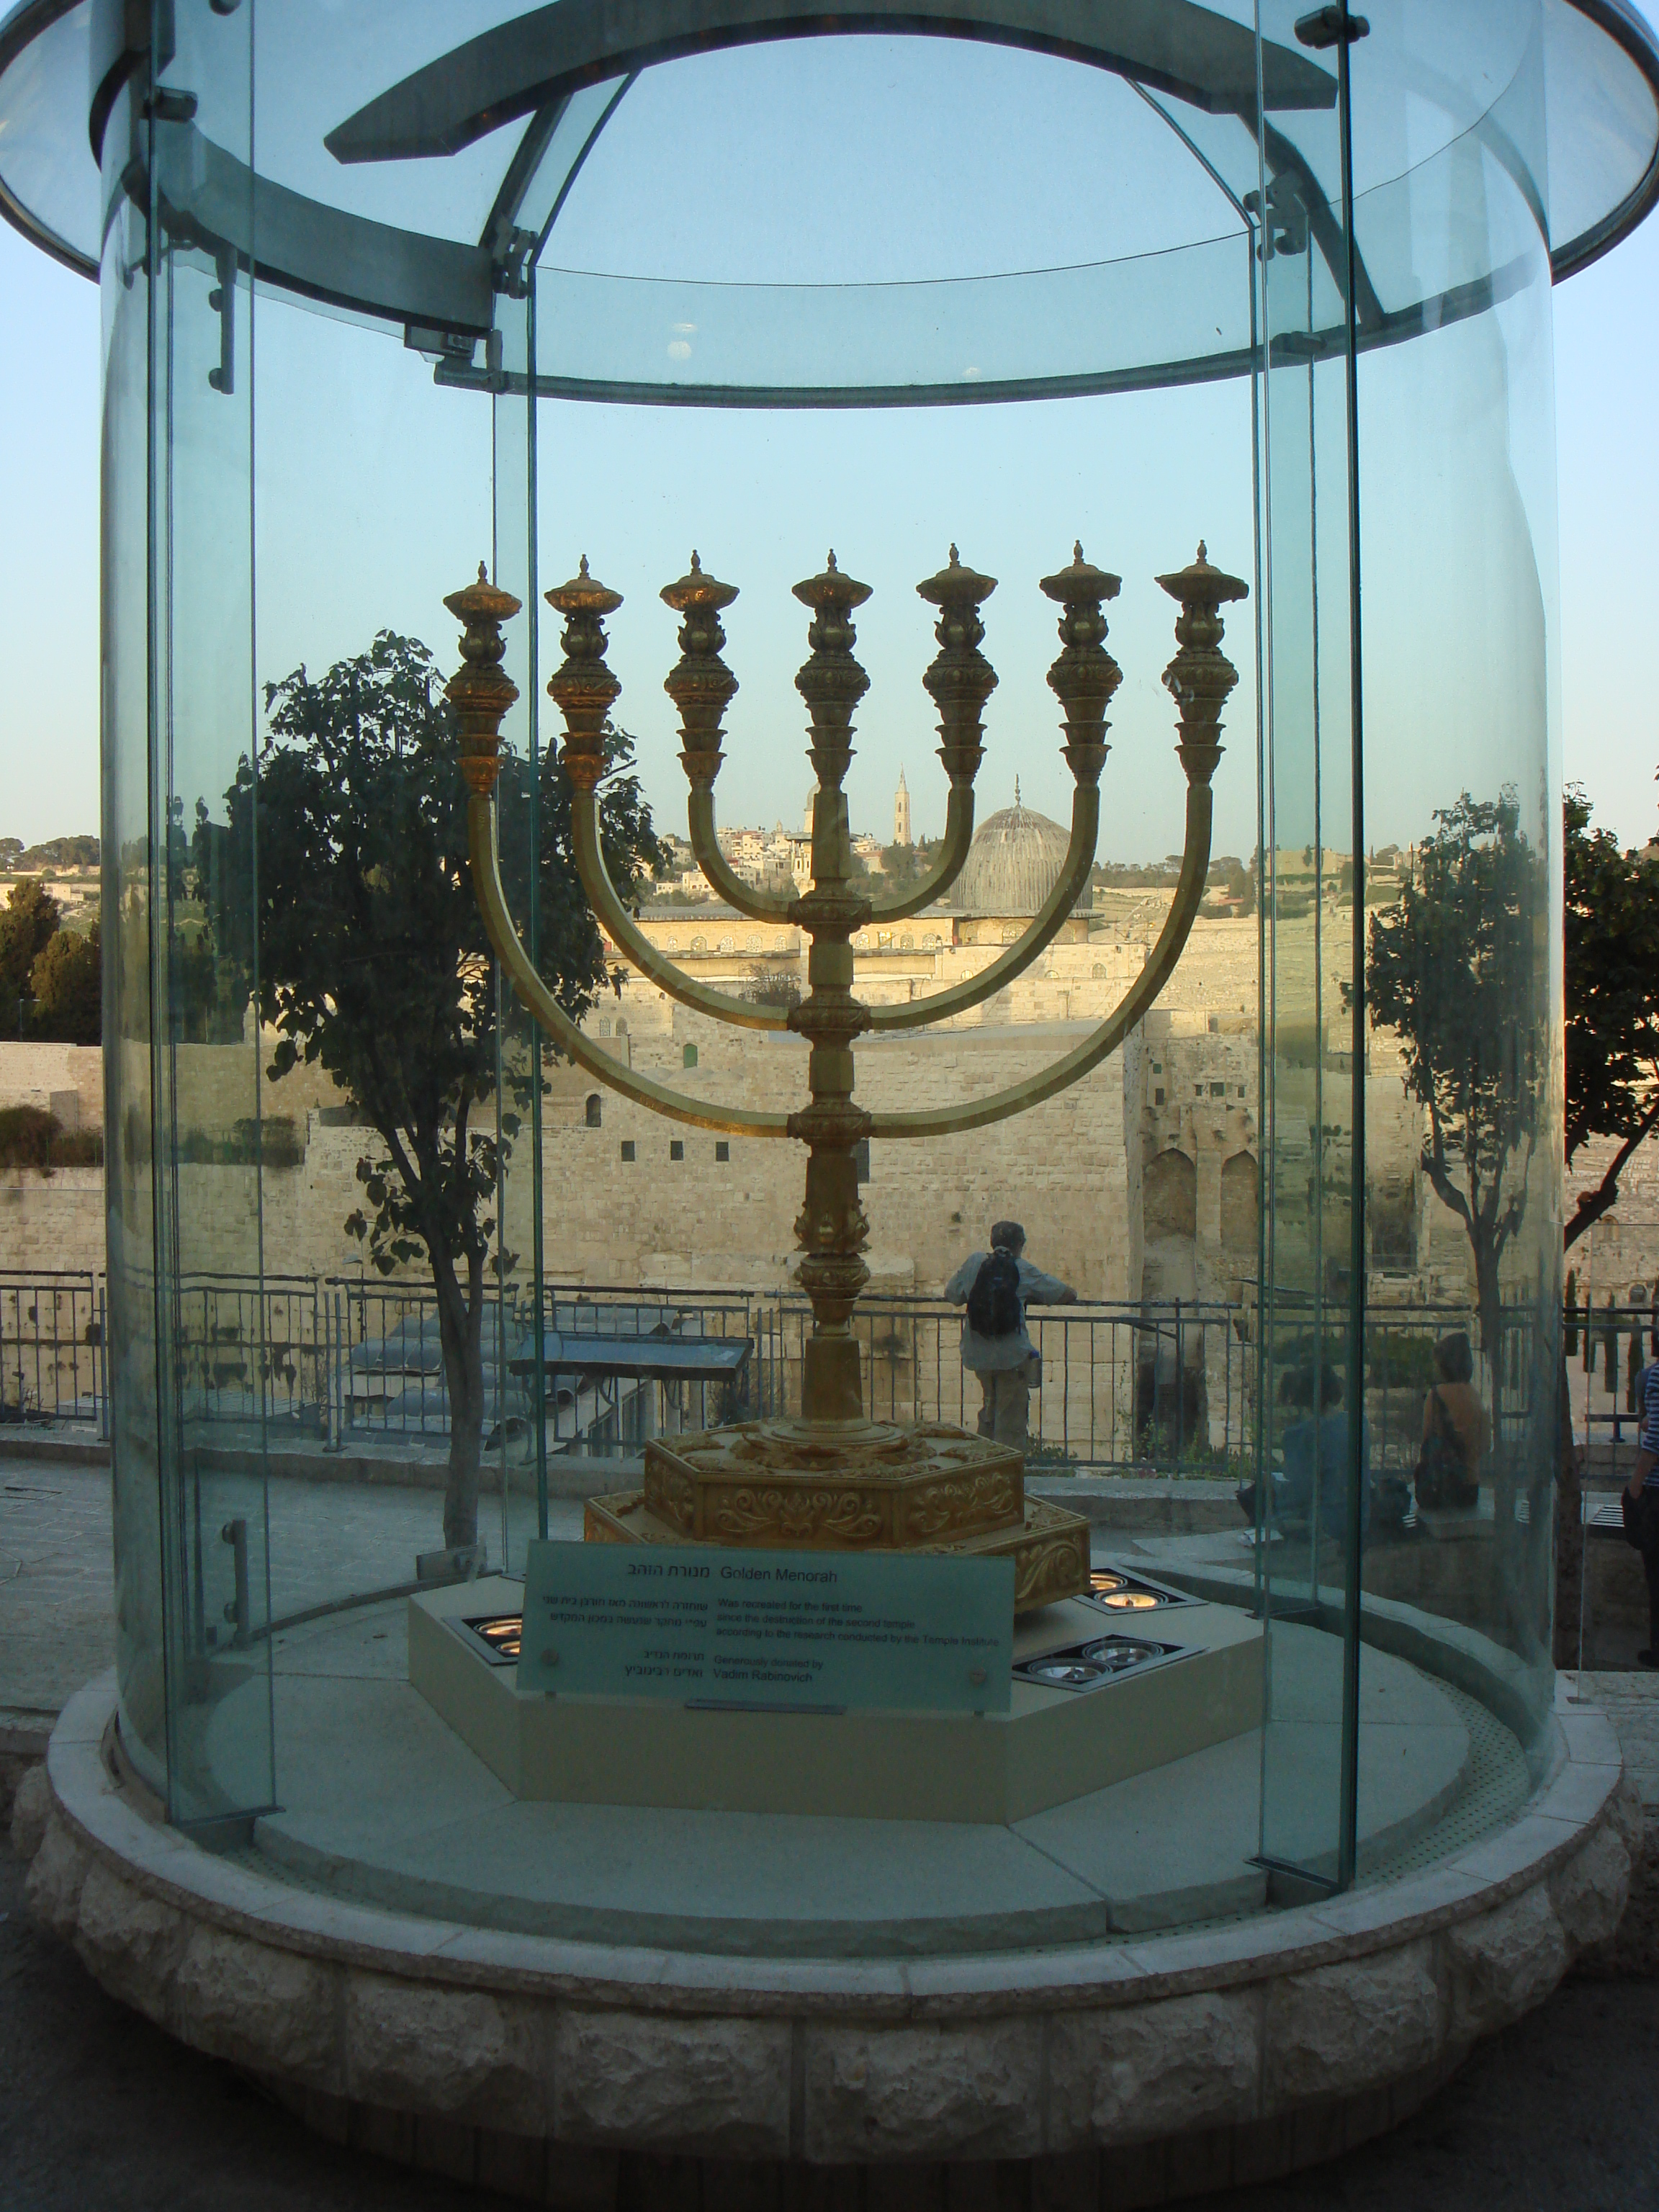 Menorah for the Third Temple, Jewish Quarter, Jerusalem, March 2008 (photo courtesy of the author).